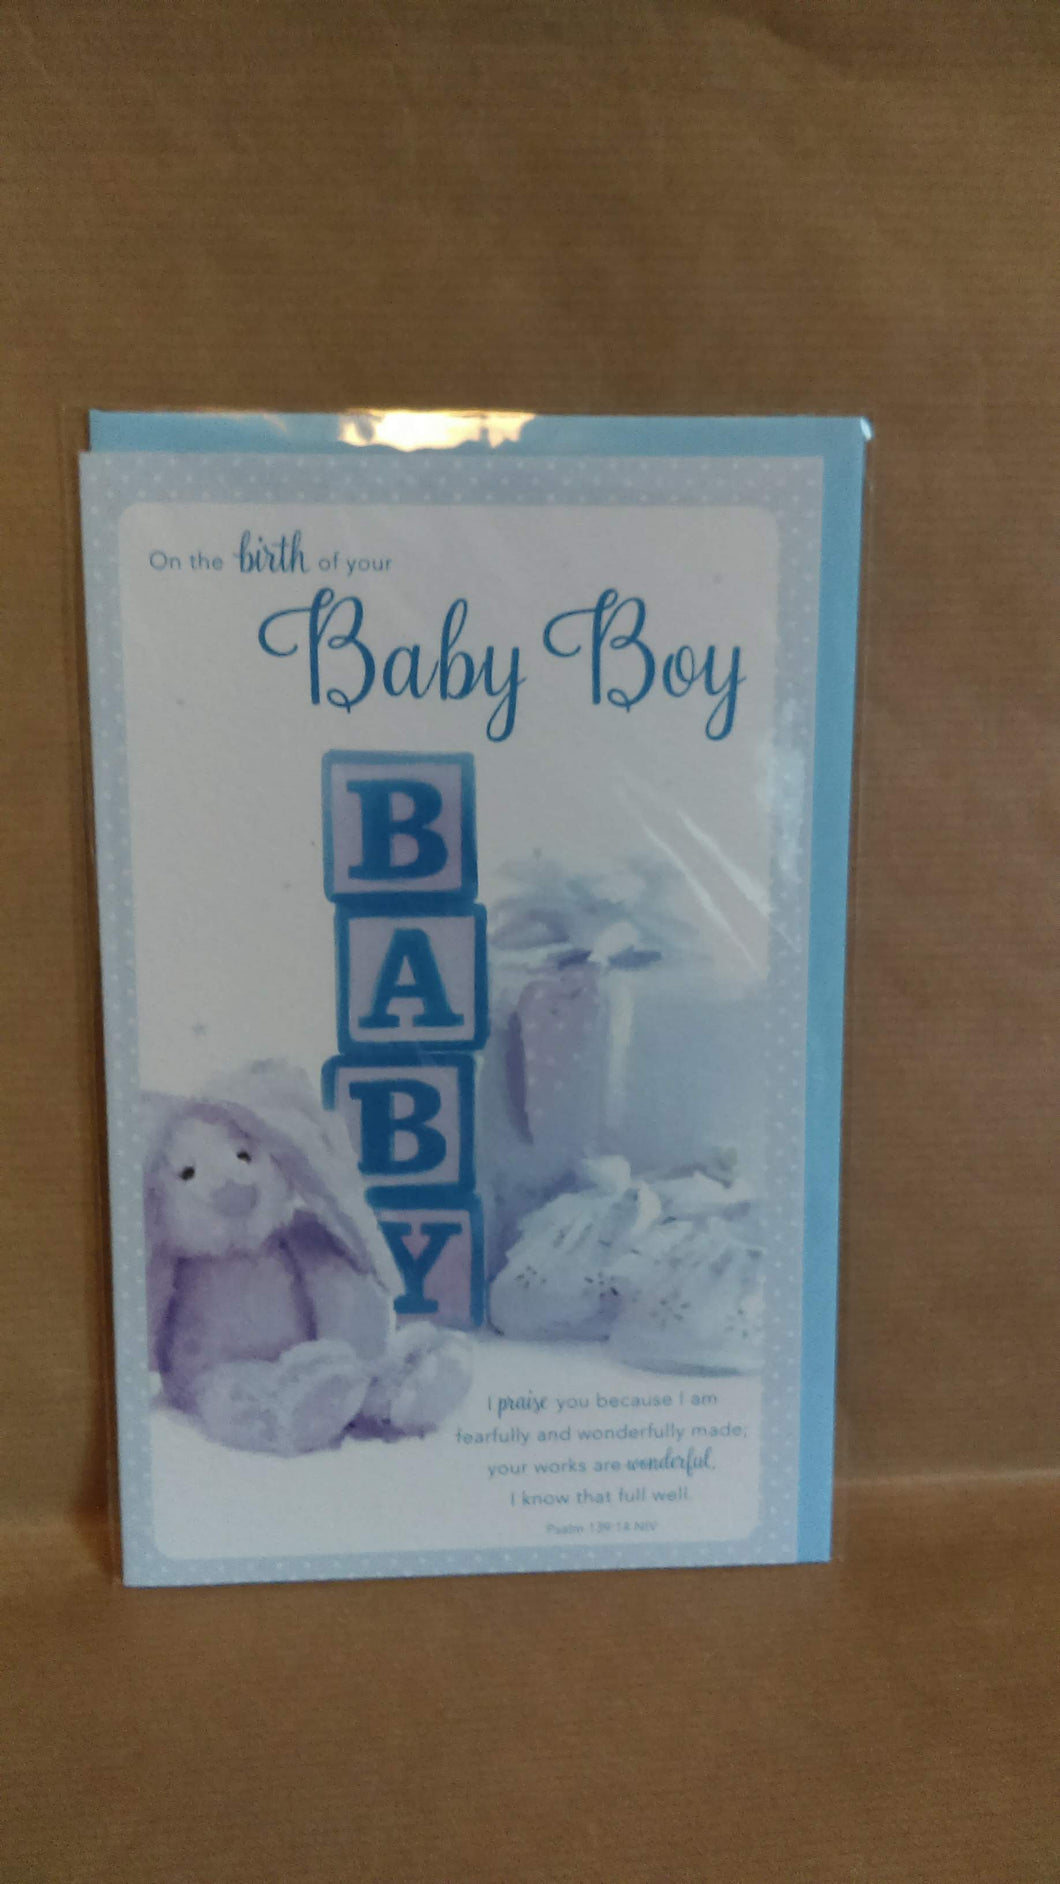 New Baby On the birth of your Baby Boy